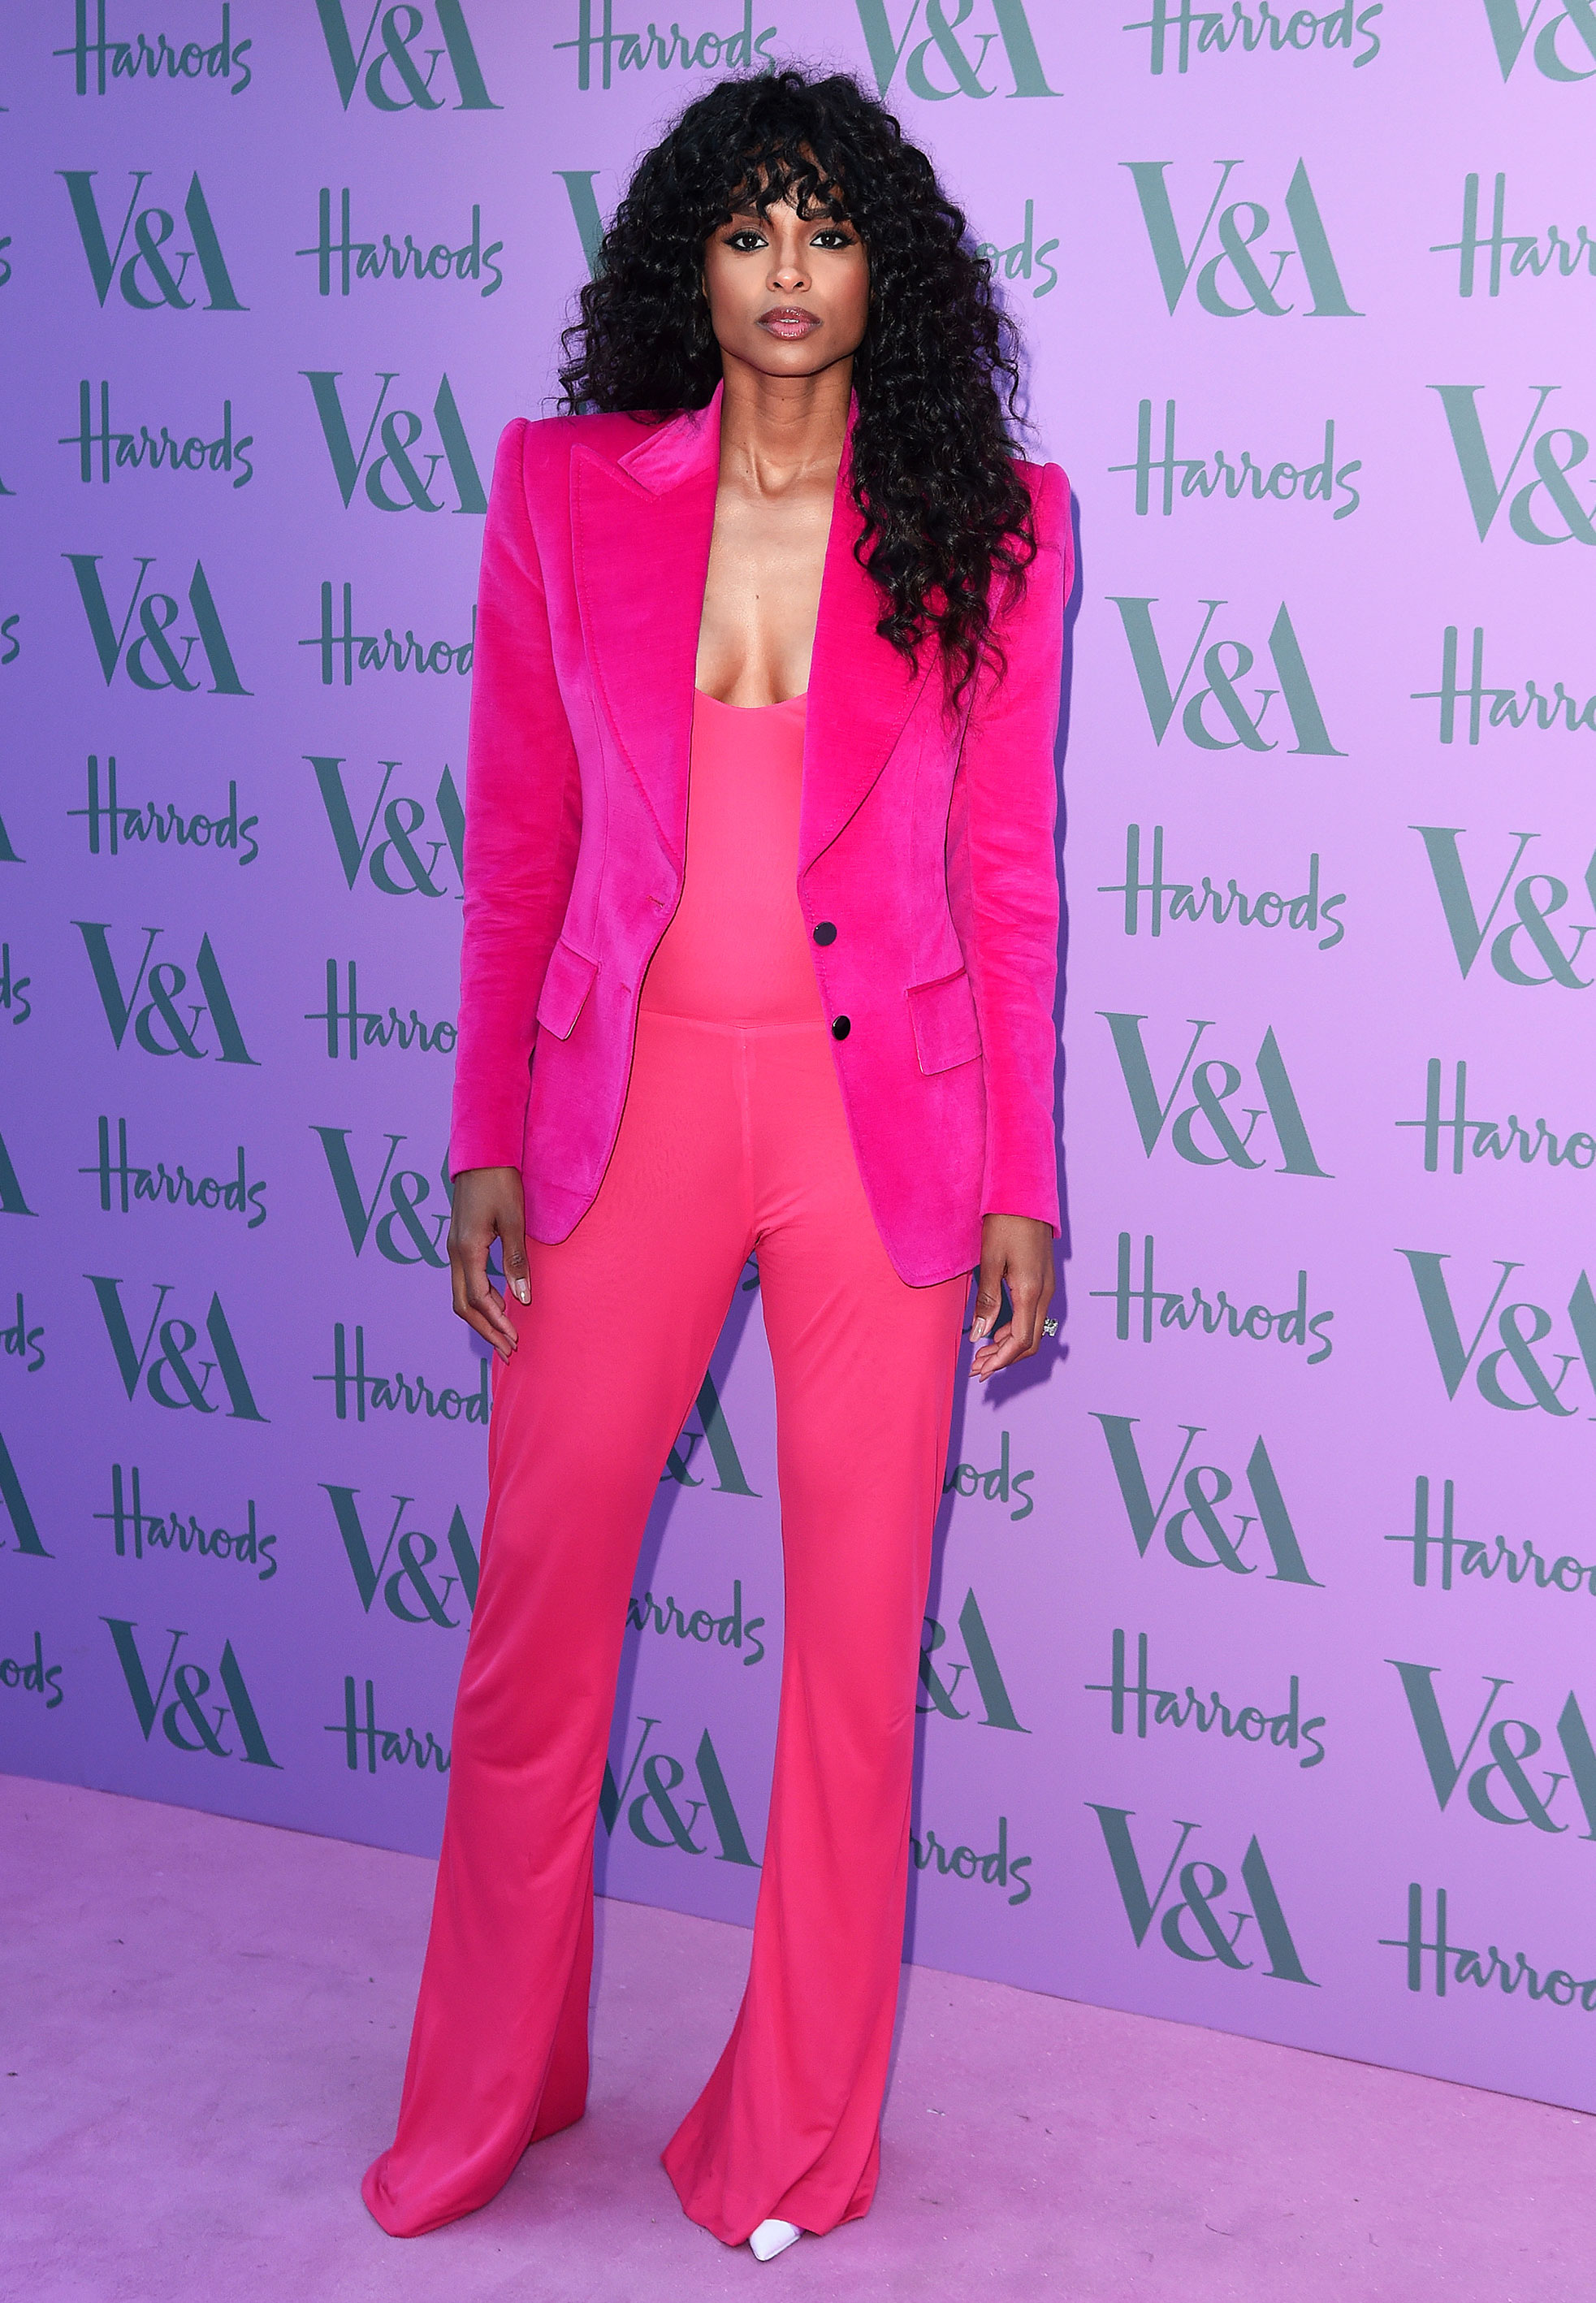 Ciara - Wearing a hot pink Tom Ford velvet jacket, jumpsuit and satin kicks.